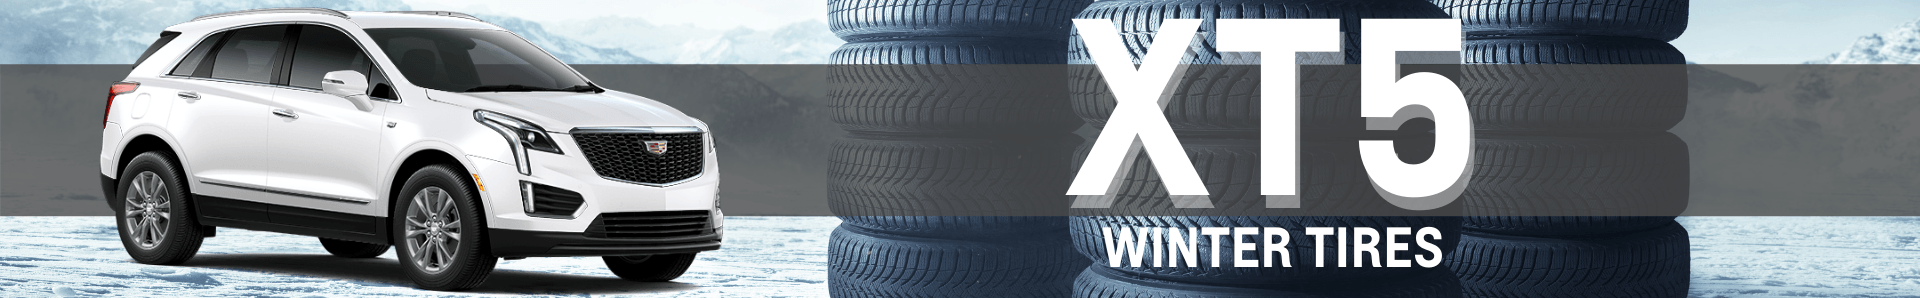 XT5 winter tire deals